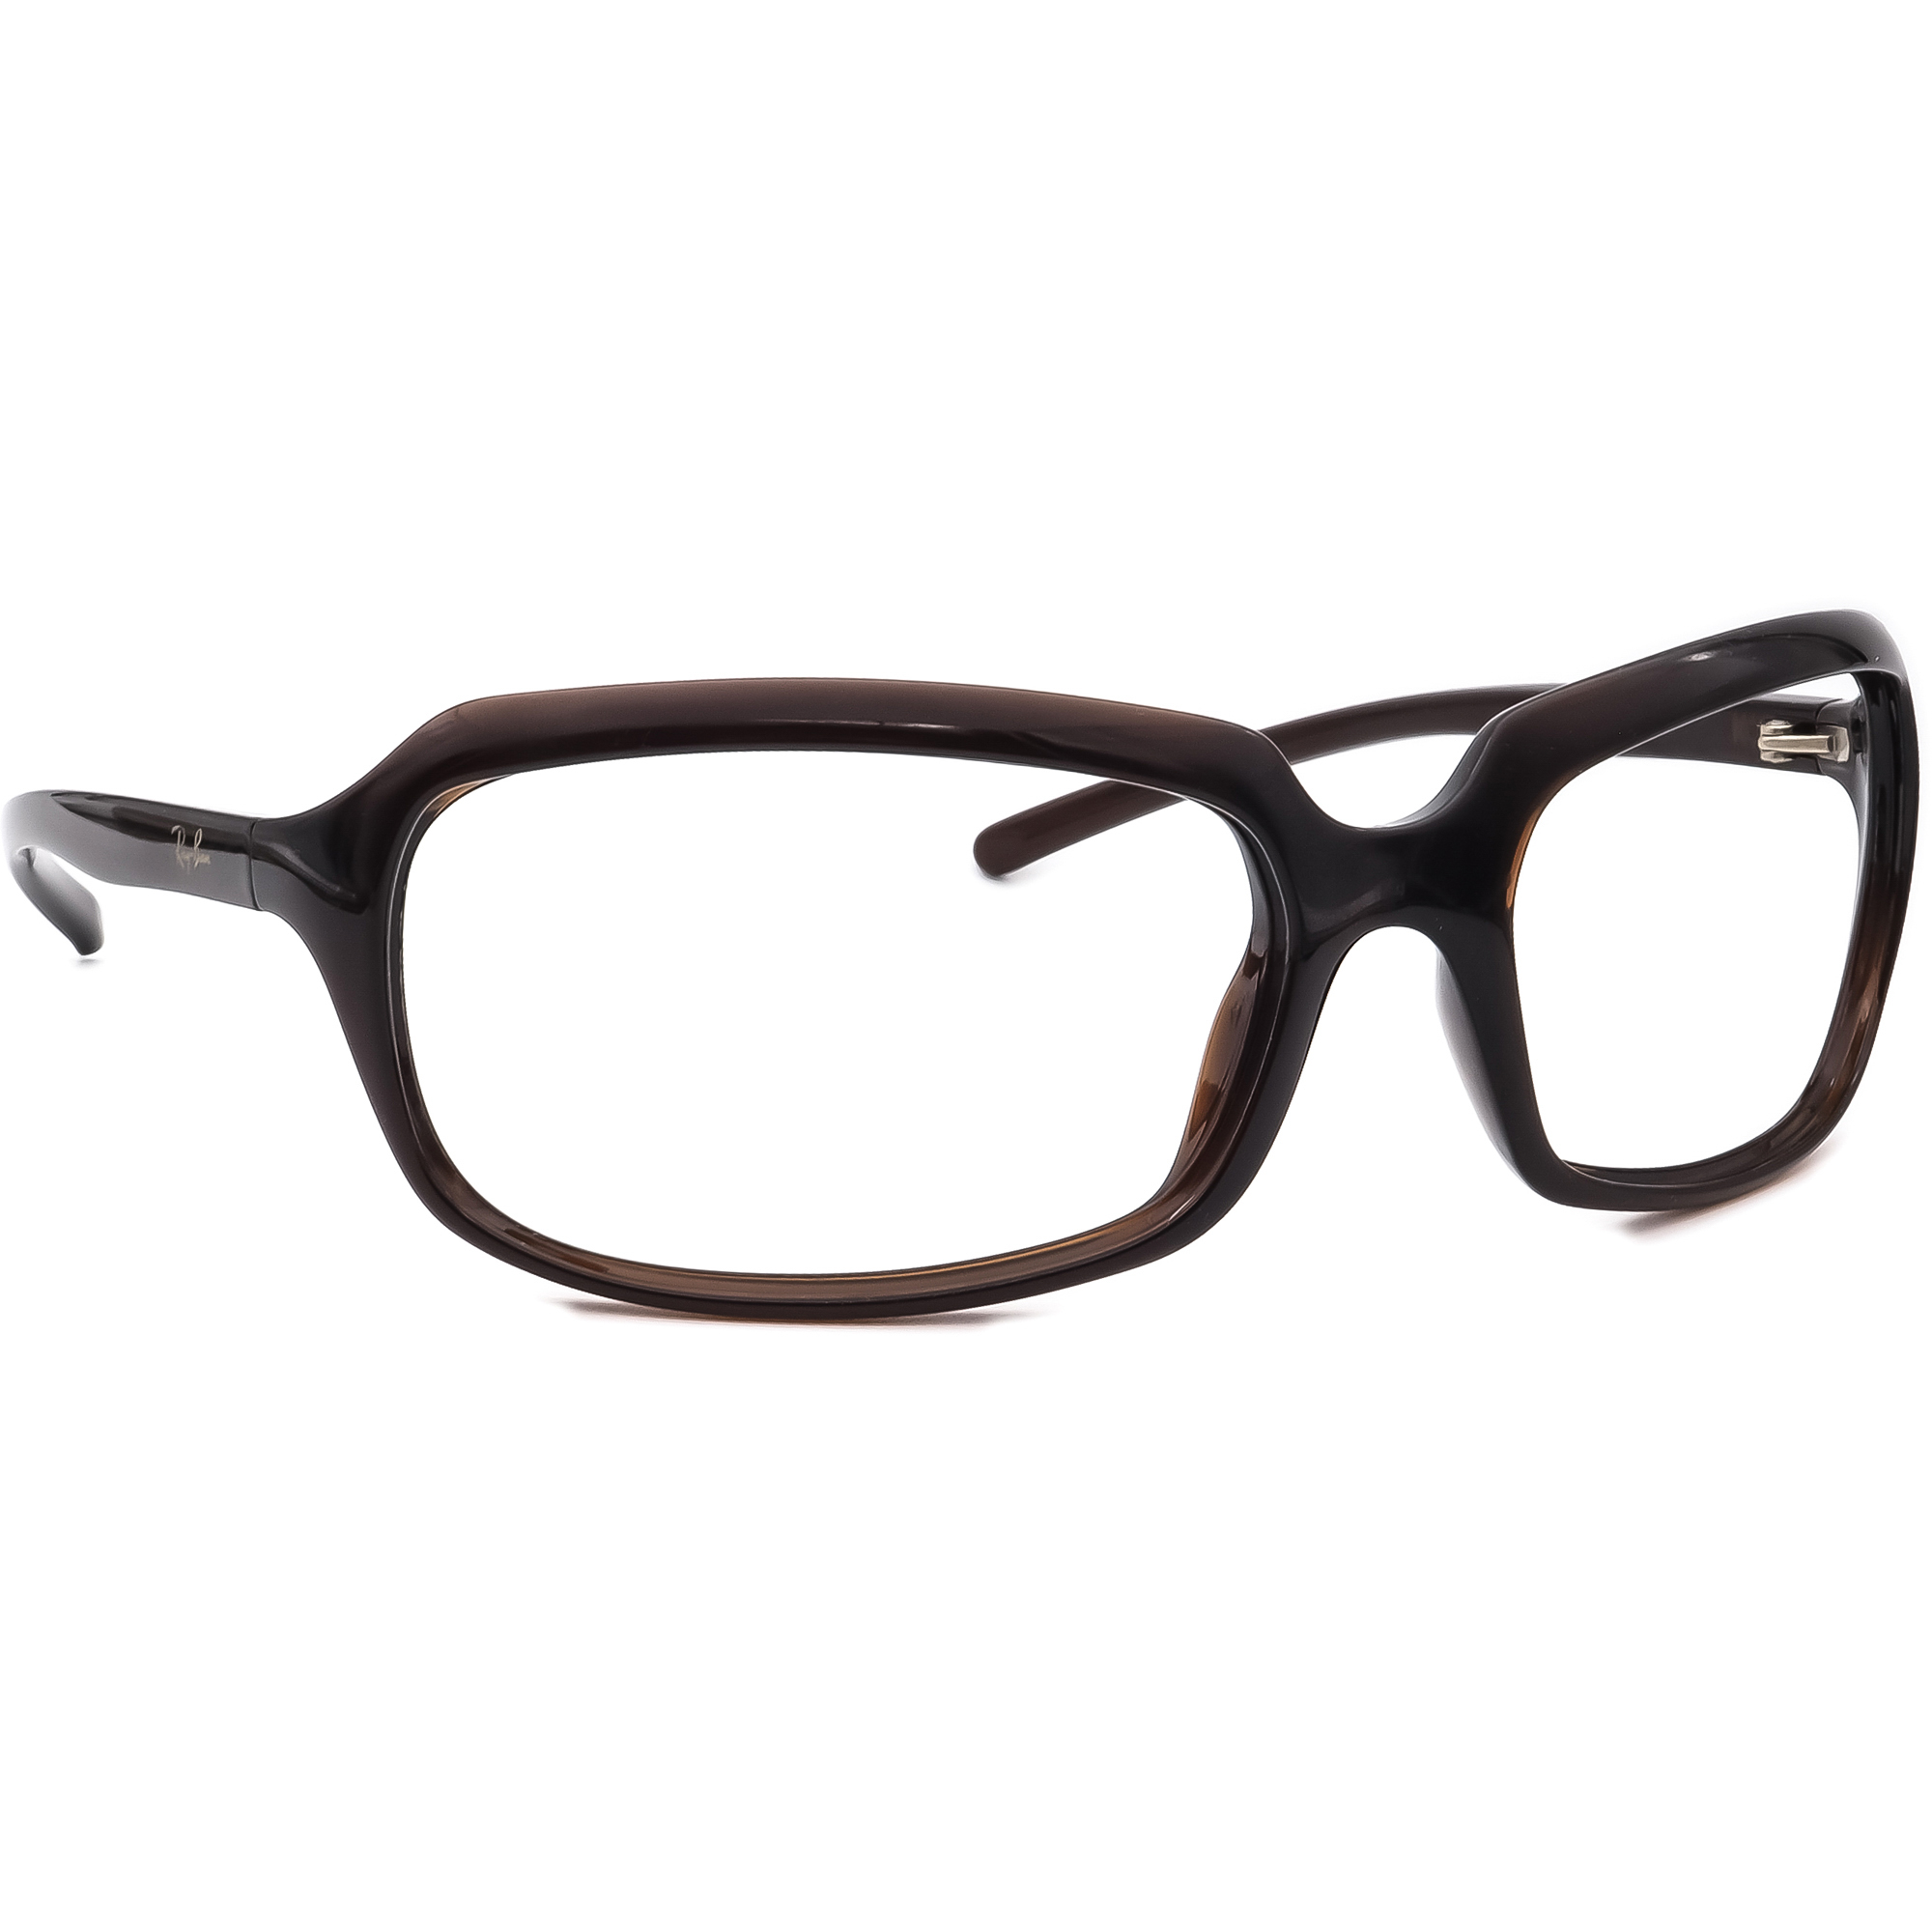 Ray-Ban RB 4116 Sunglasses Frame Only